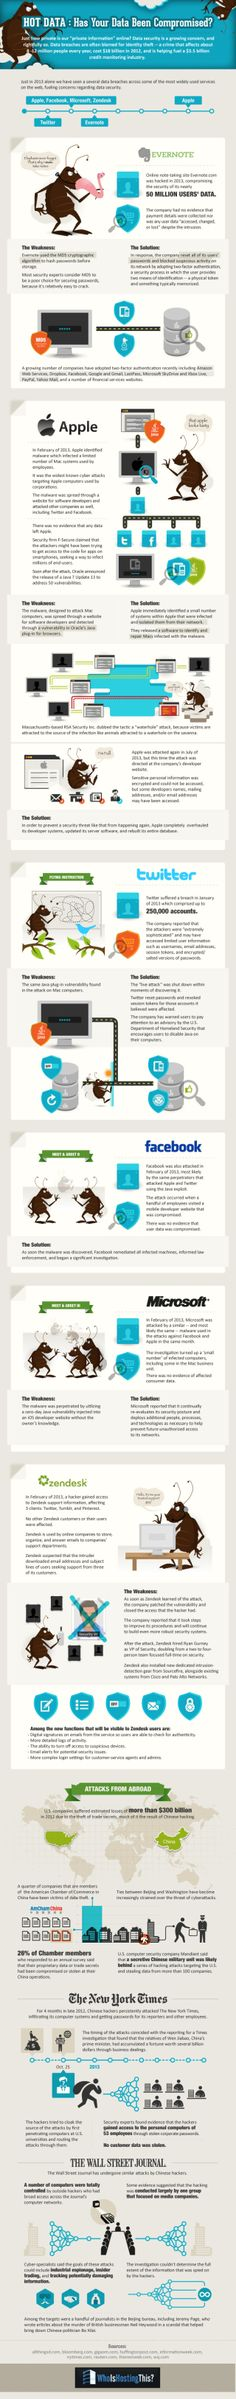 Hot Data (has your data been compromised) #infografia #infographic #internet